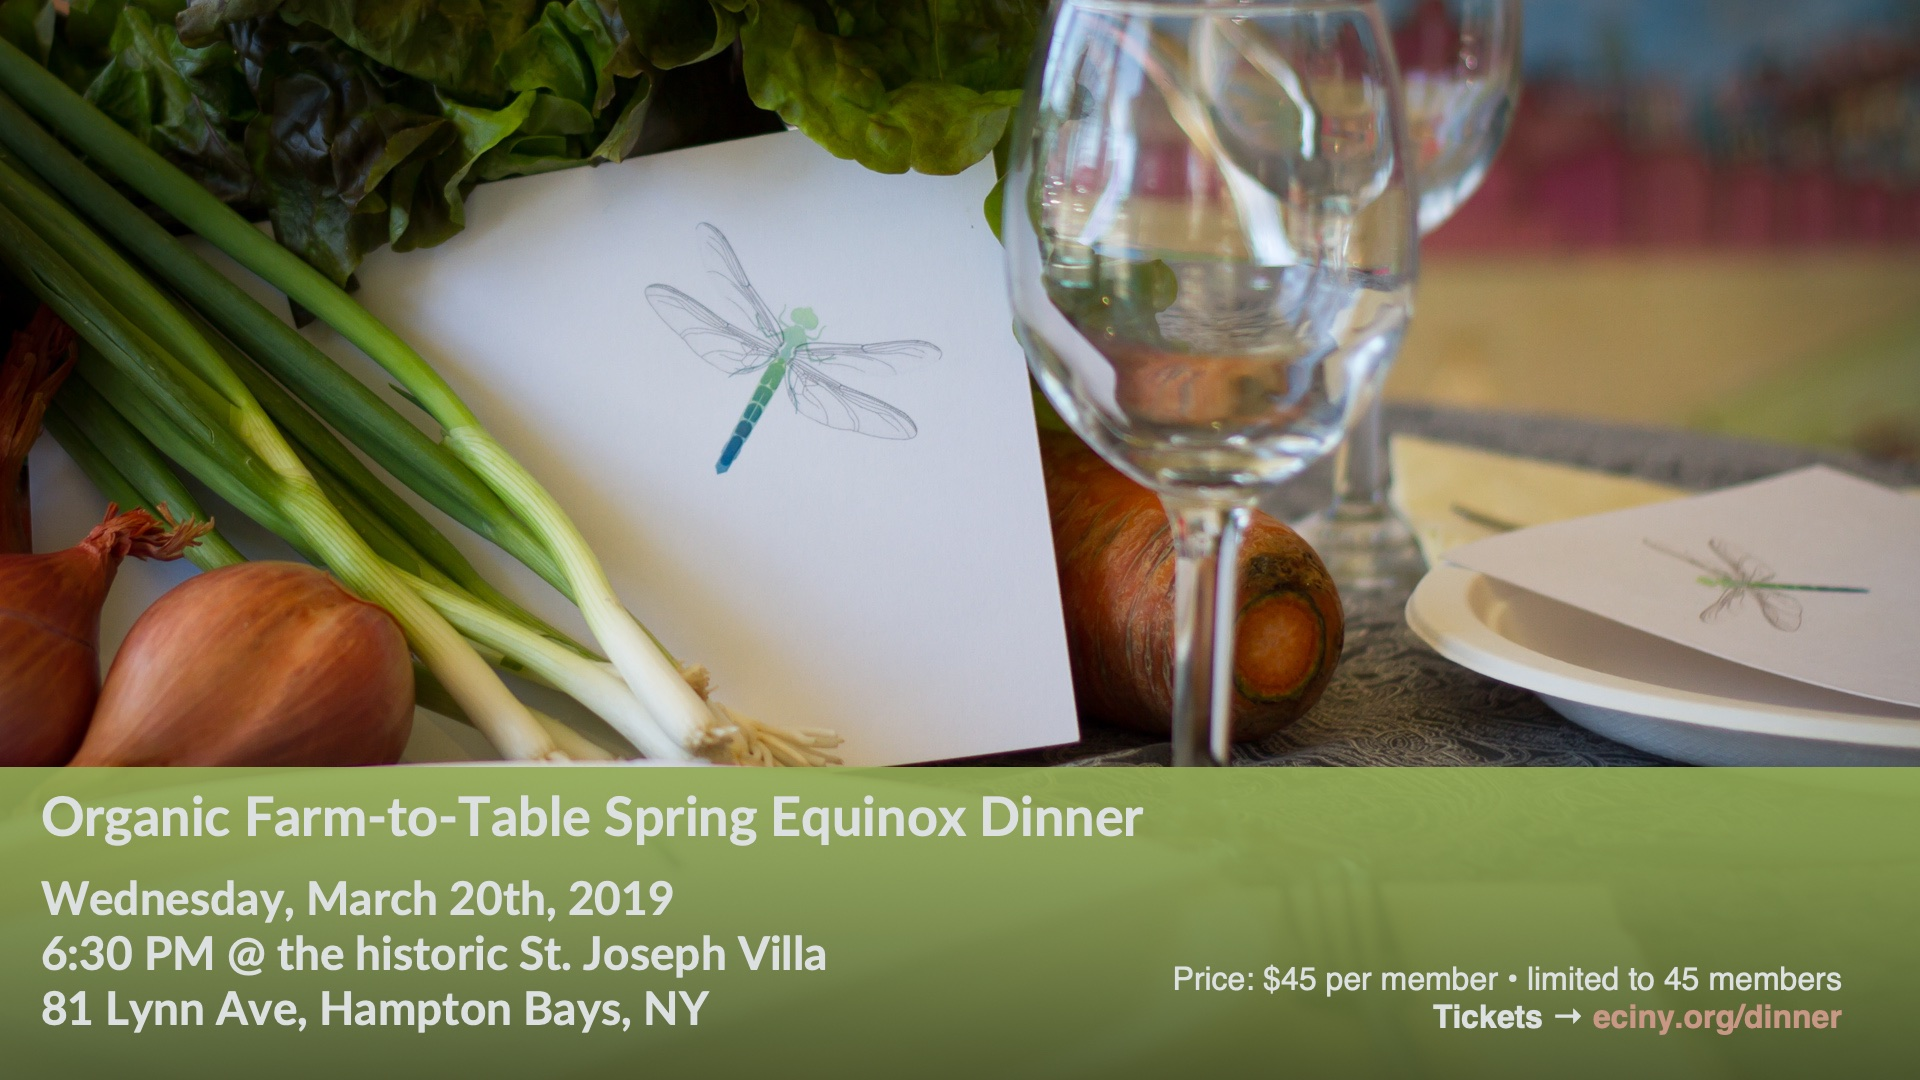 Organic Farm-to-Table Spring Equinox Dinner - Mar 20, 2019 - FB cover 1920x1080.jpg